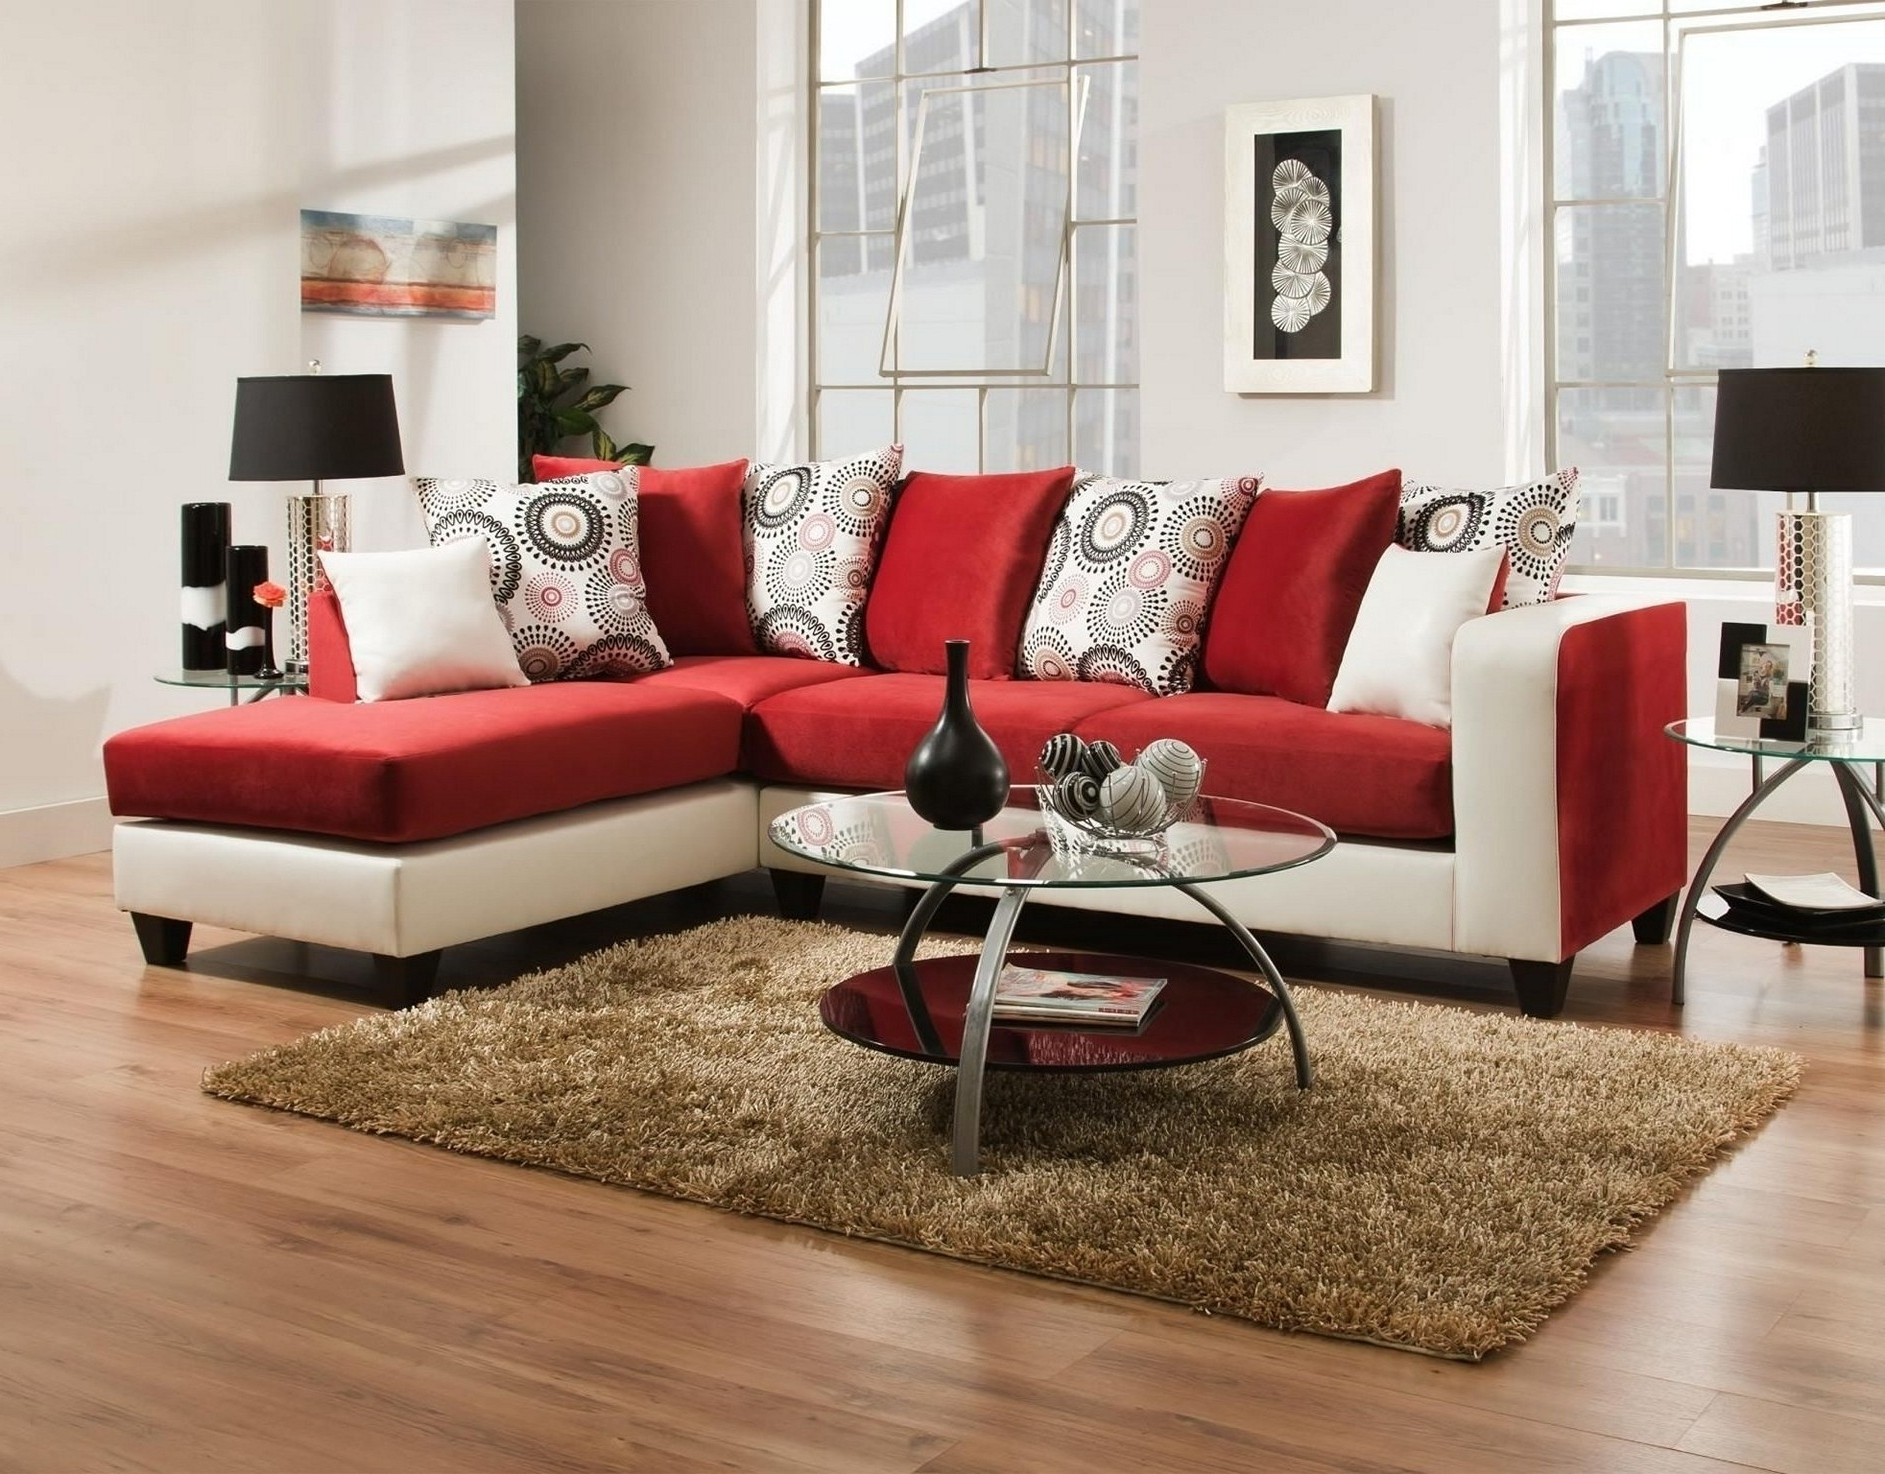 Most Popular Sectional Sofas Under 400 Throughout Sofas : Cheap Sofa Beds Leather Sofa Set Cheap Leather Sofas Cheap (View 4 of 20)